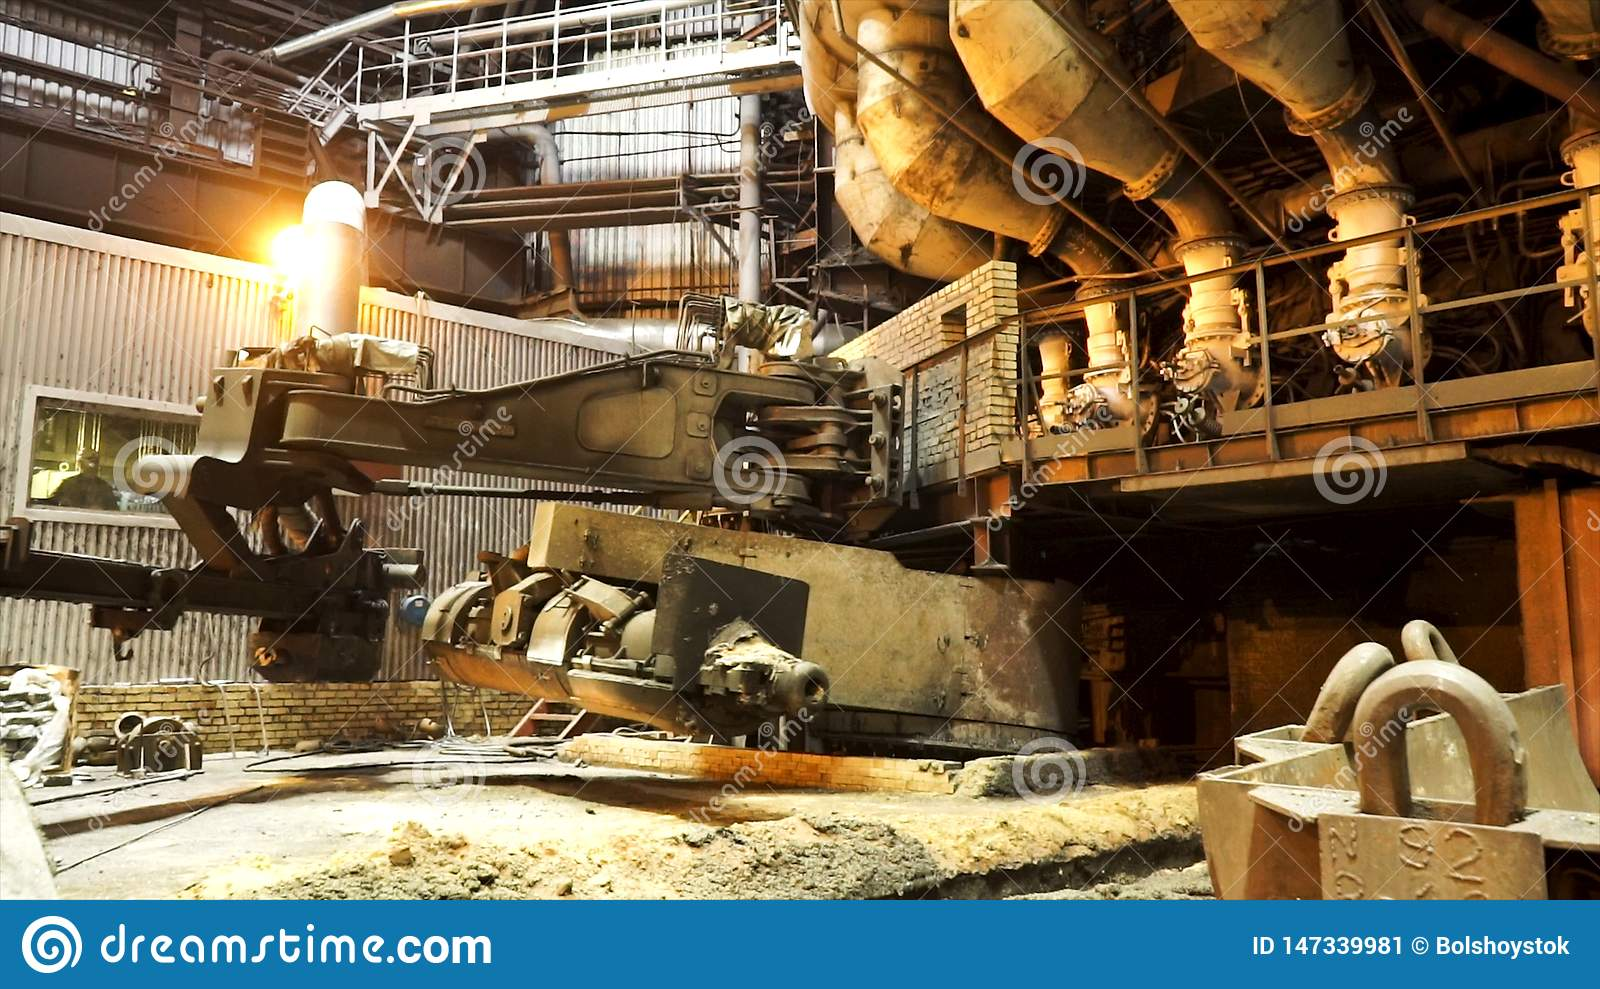 Hot steel production process at the steel plant, heavy industry concept. Stock footage. Factory for the manufacture of